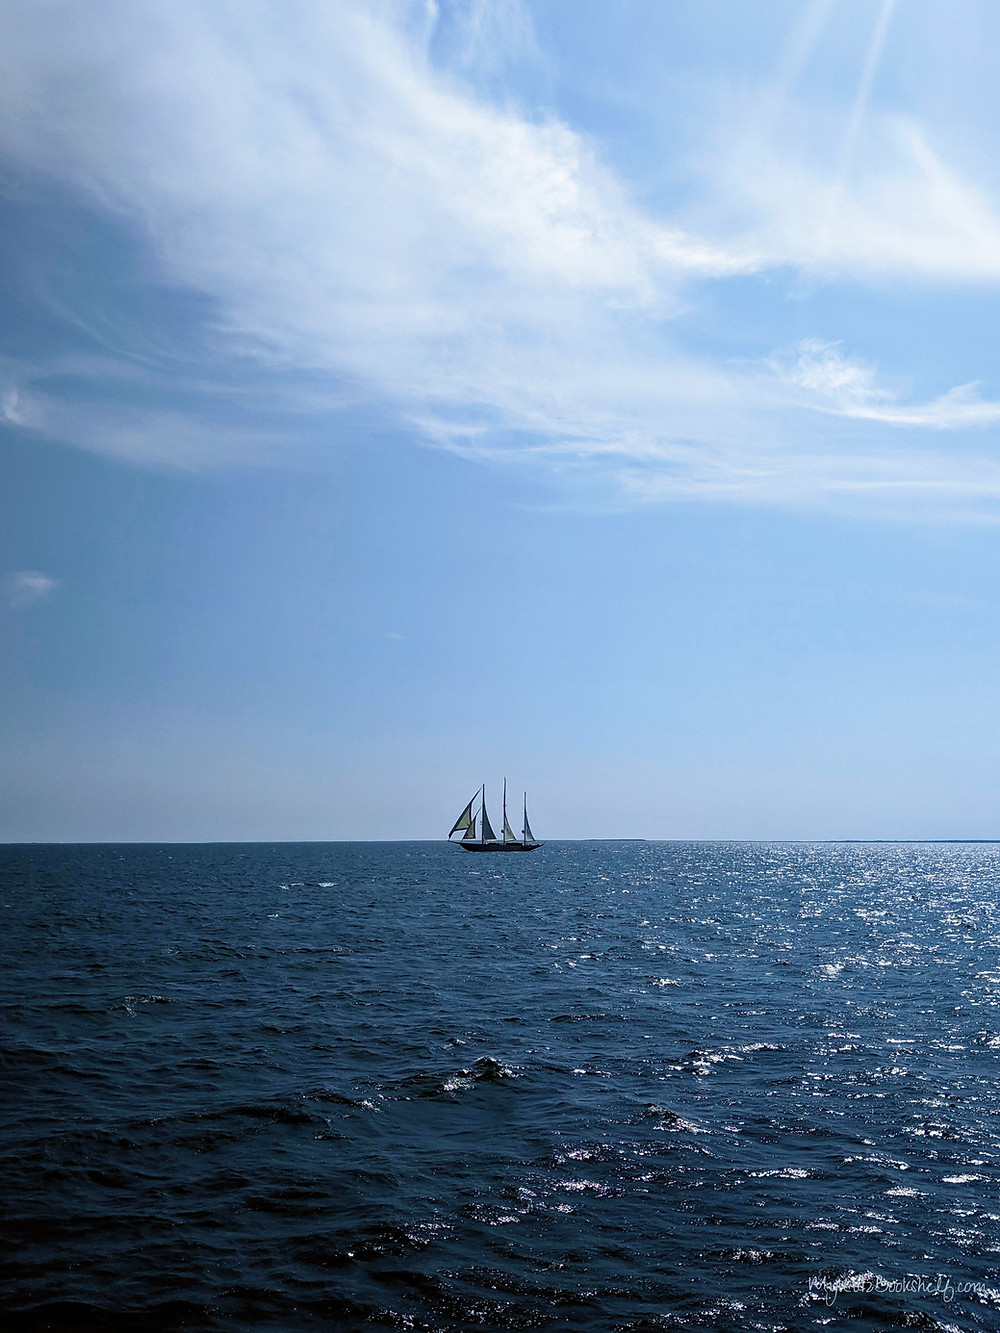 The-view-on-the-ferry-to-Nantucket-sailboat-on-ocean